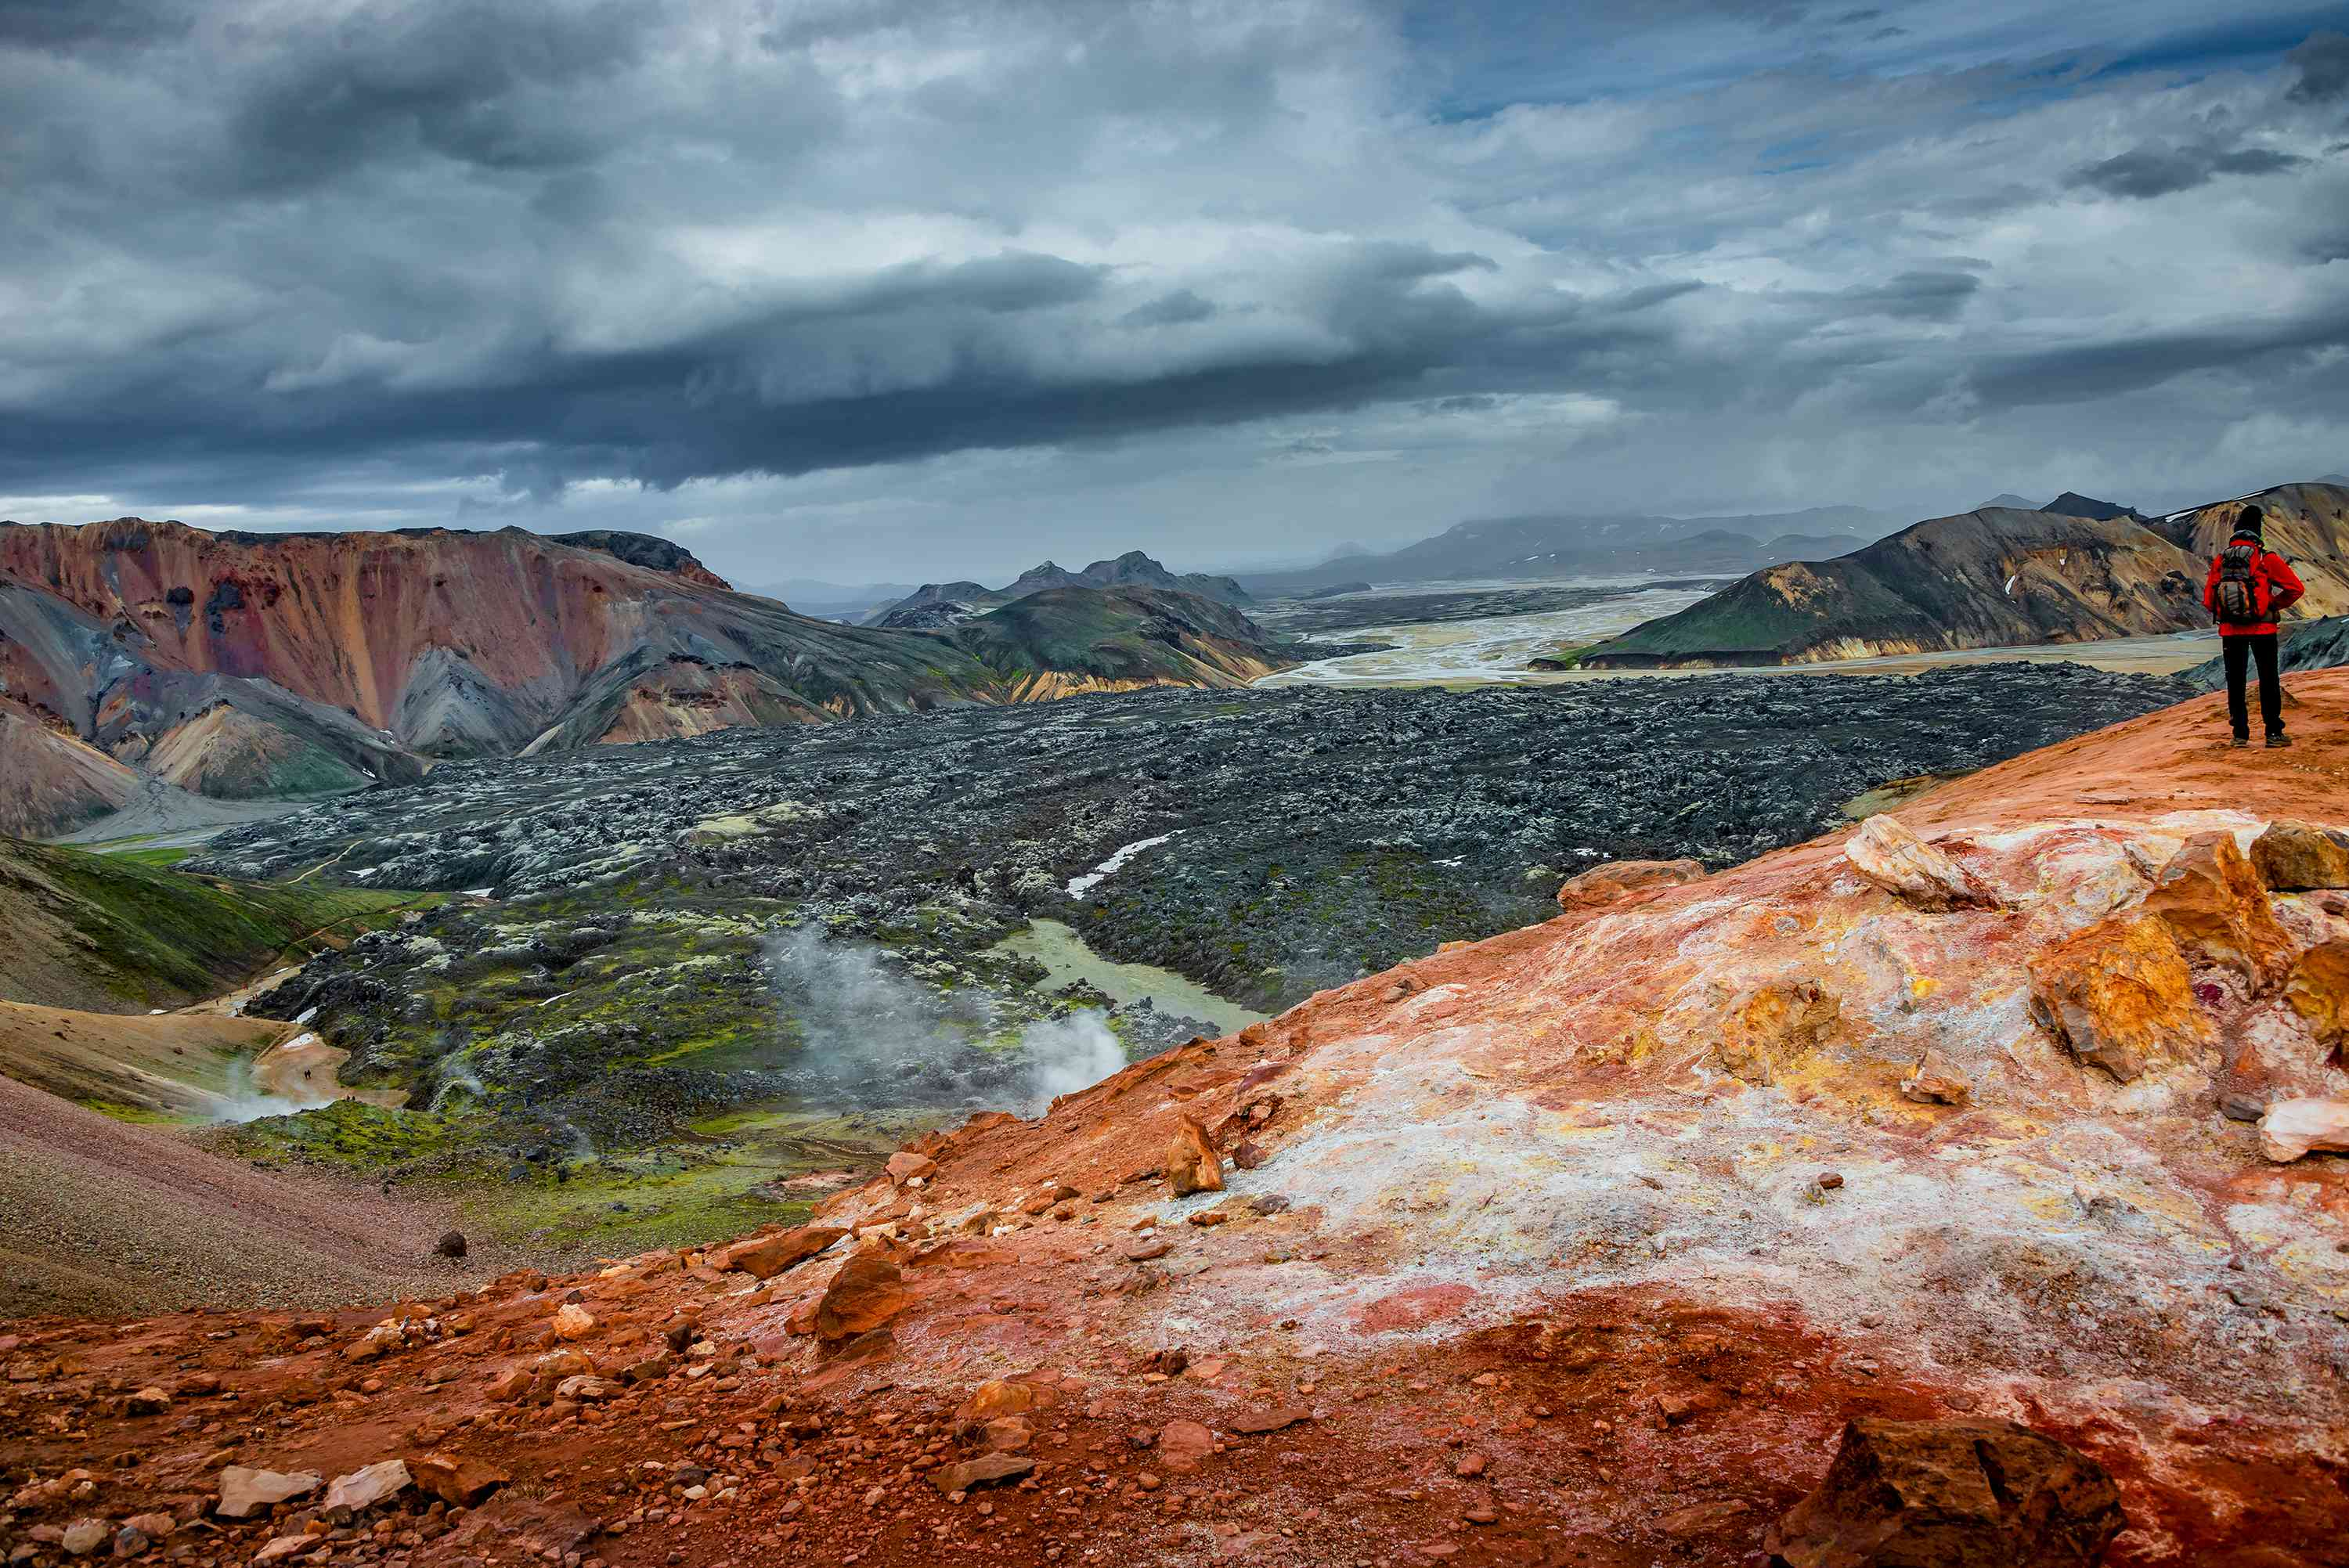 Beautiful colorful volcanic mountains Landmannalaugar and hikers on trail, Iceland